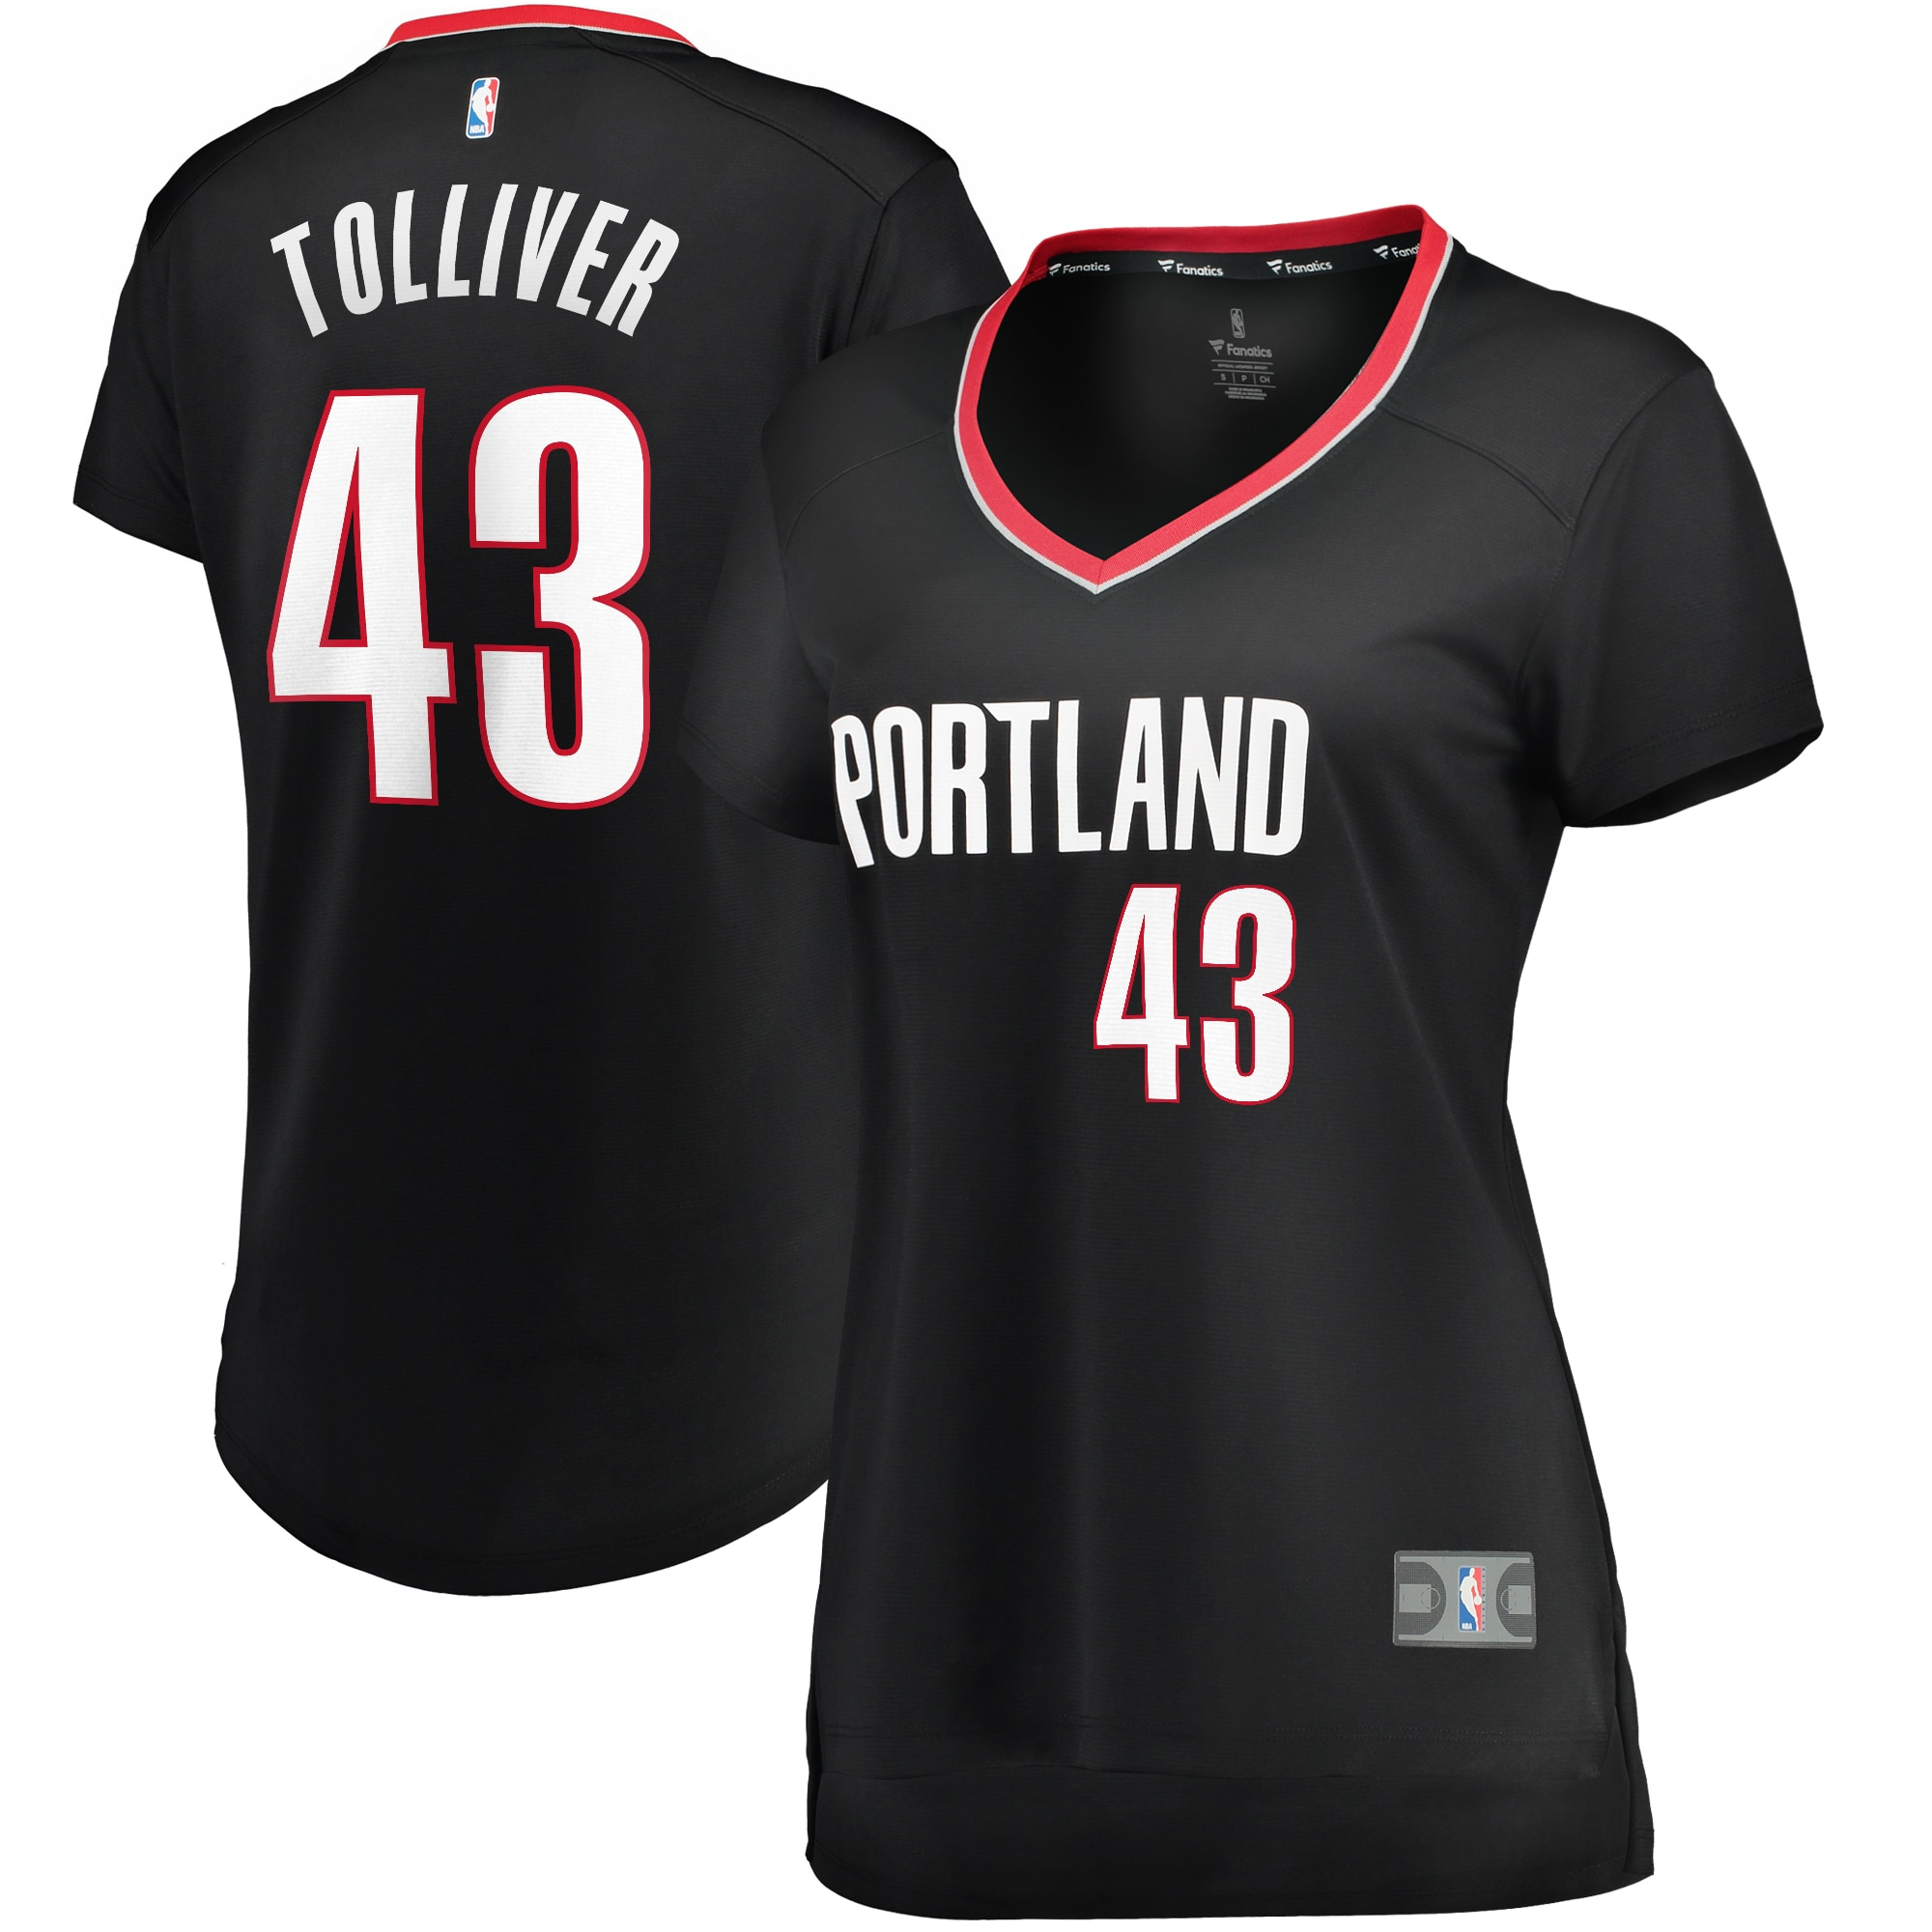 Anthony Tolliver Portland Trail Blazers Fanatics Branded Women's Fast Break Replica Jersey Black - Icon Edition